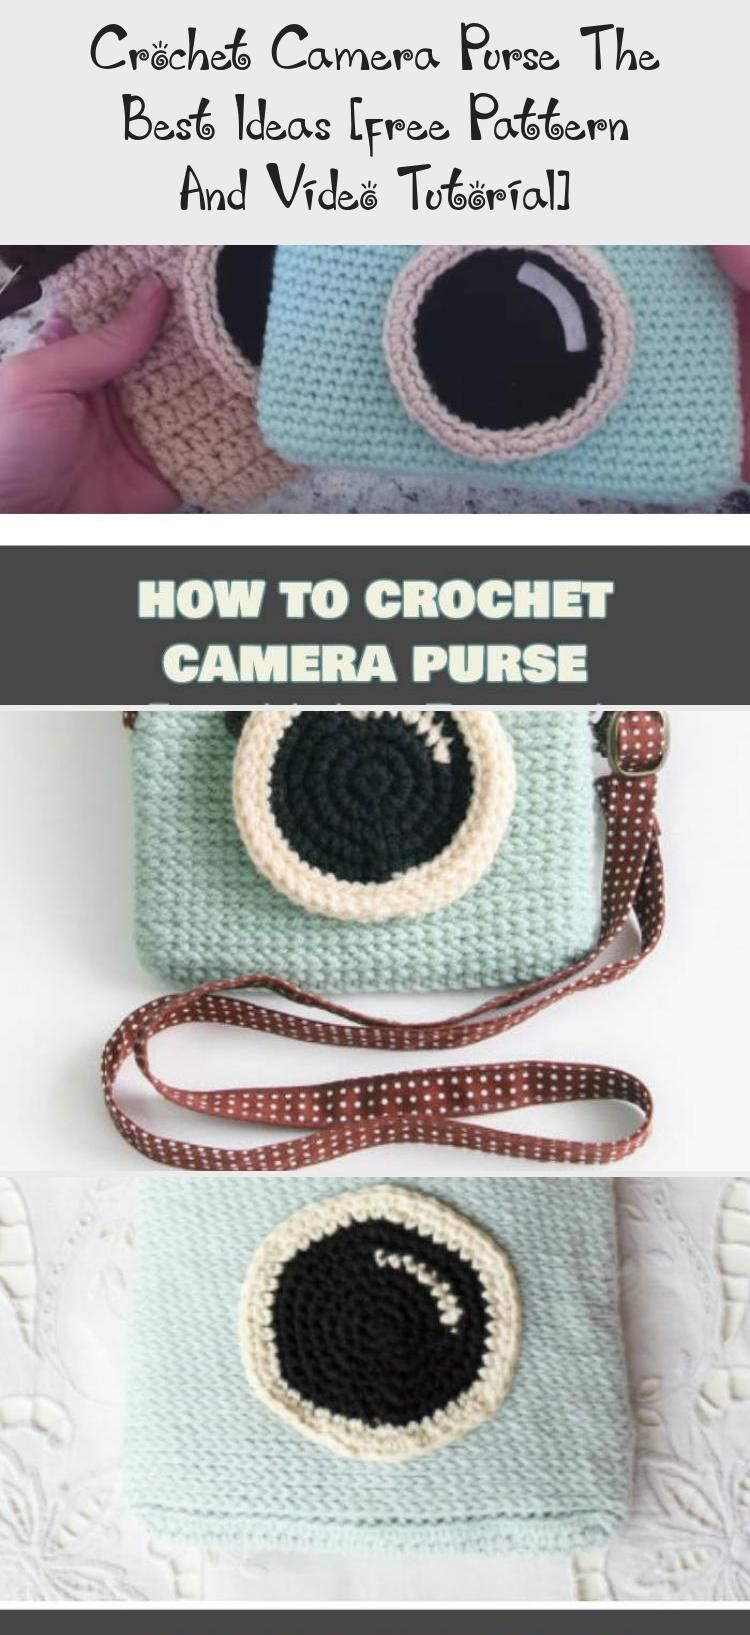 Crochet Camera Purse The Best Ideas [free Pattern And Video Tutorial] #crochetcamera